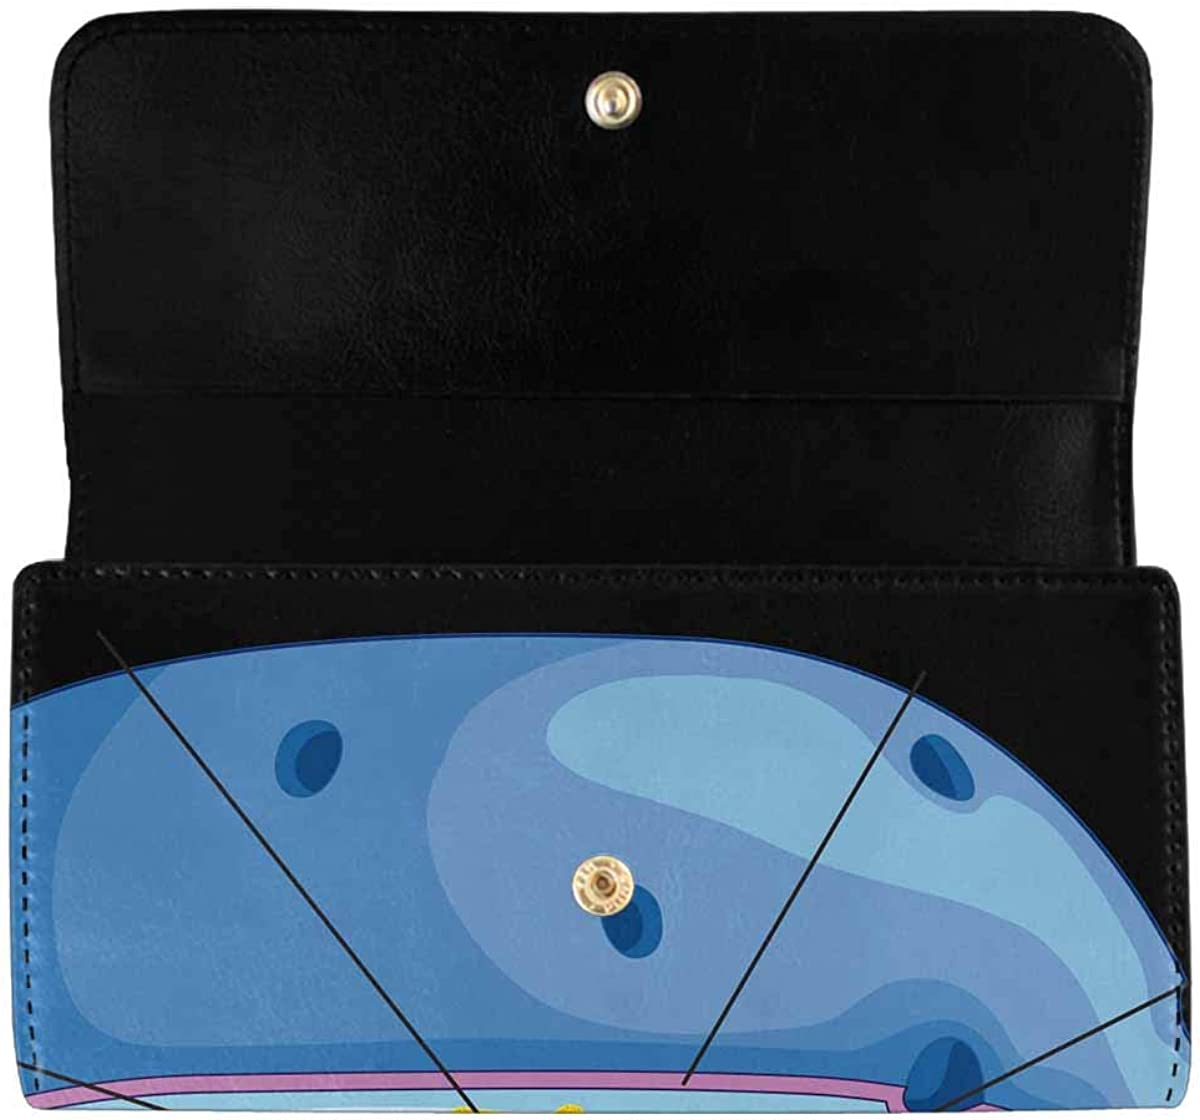 INTERESTPRINT Women's Trifold Clutch Purses Dark Tunnel with Interesting Structures Card Holder Wallet